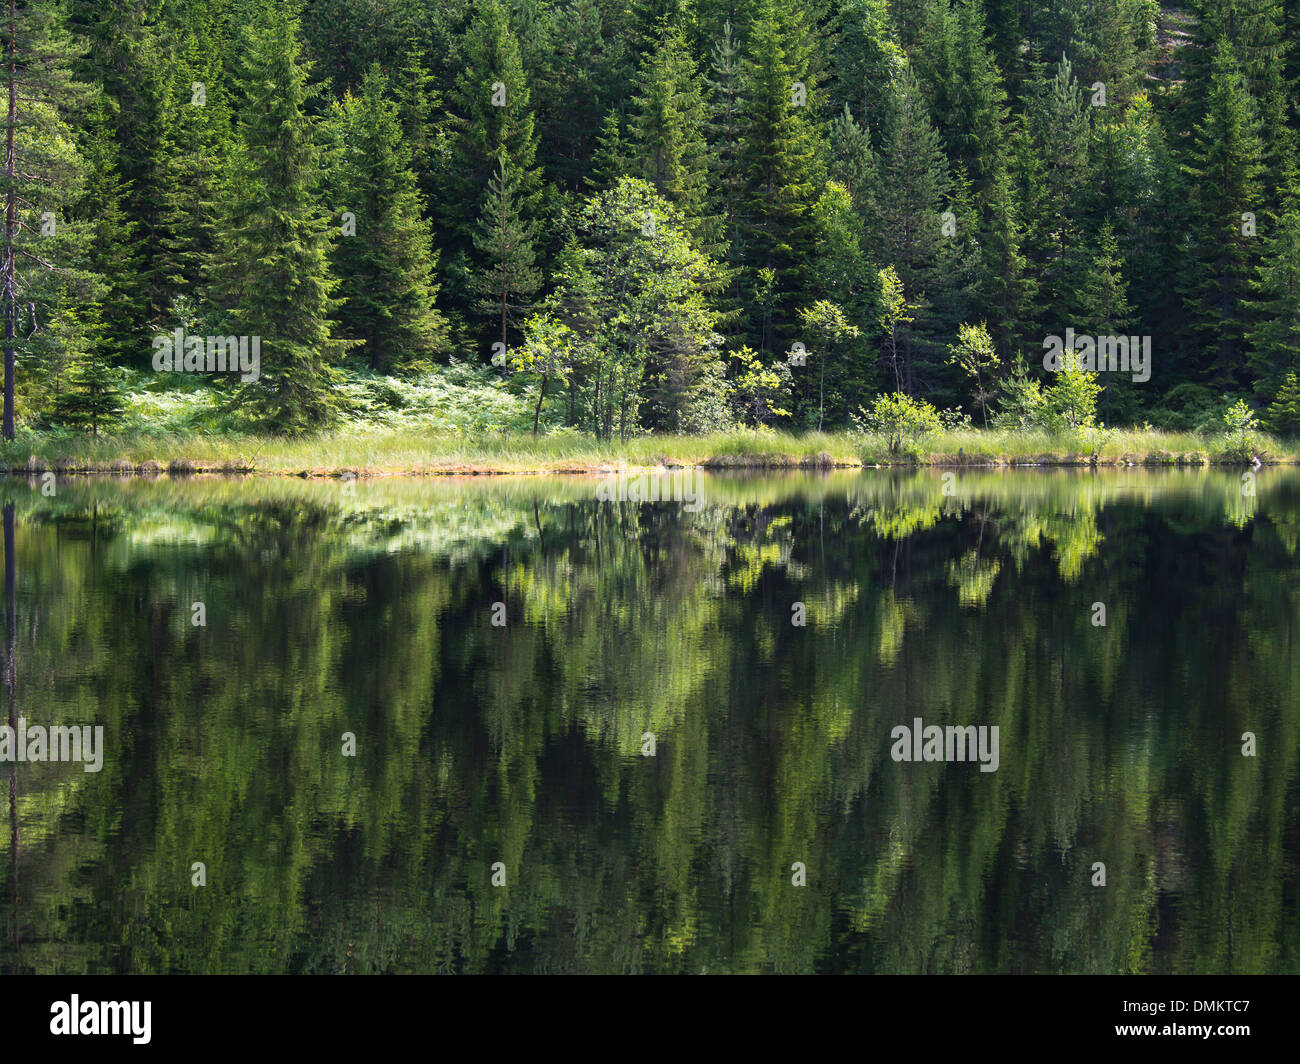 Summer in the Norwegian forest, inviting green, water, trees, reflections, Nordmarka Oslo Norway - Stock Image